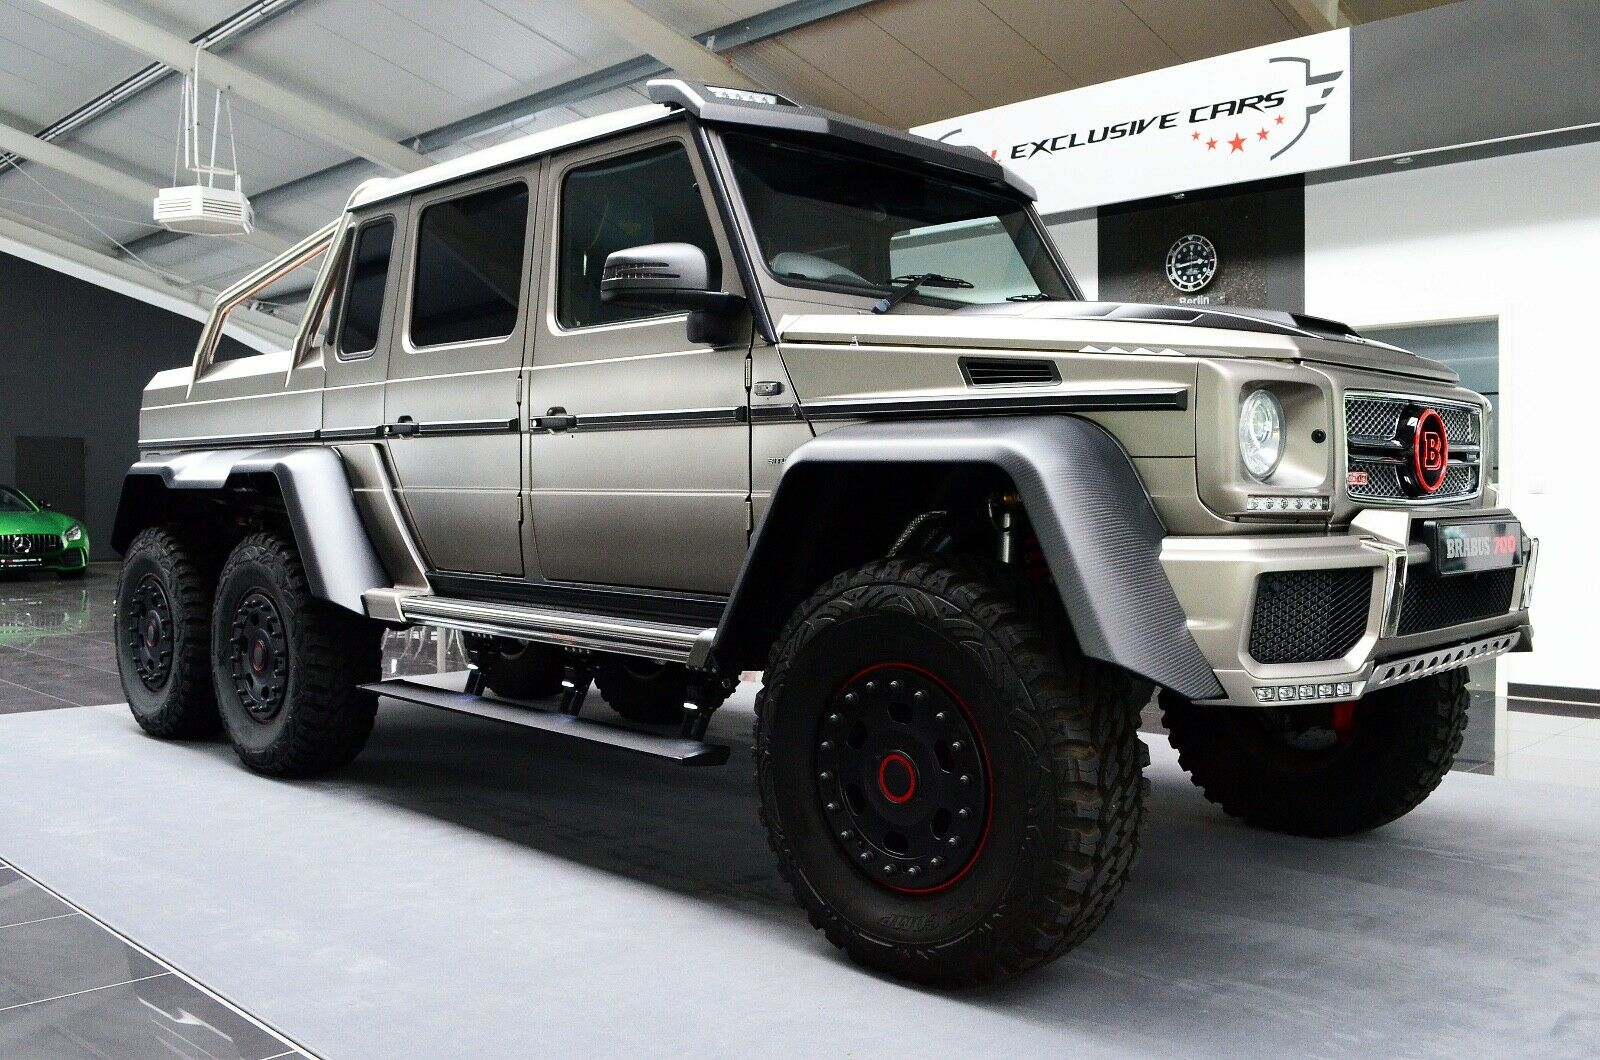 Mercedes Benz G 63 Amg 6x6 Brabus700 Limited Edition 1of15 Luxury Pulse Cars Germany For Sale On Luxurypulse